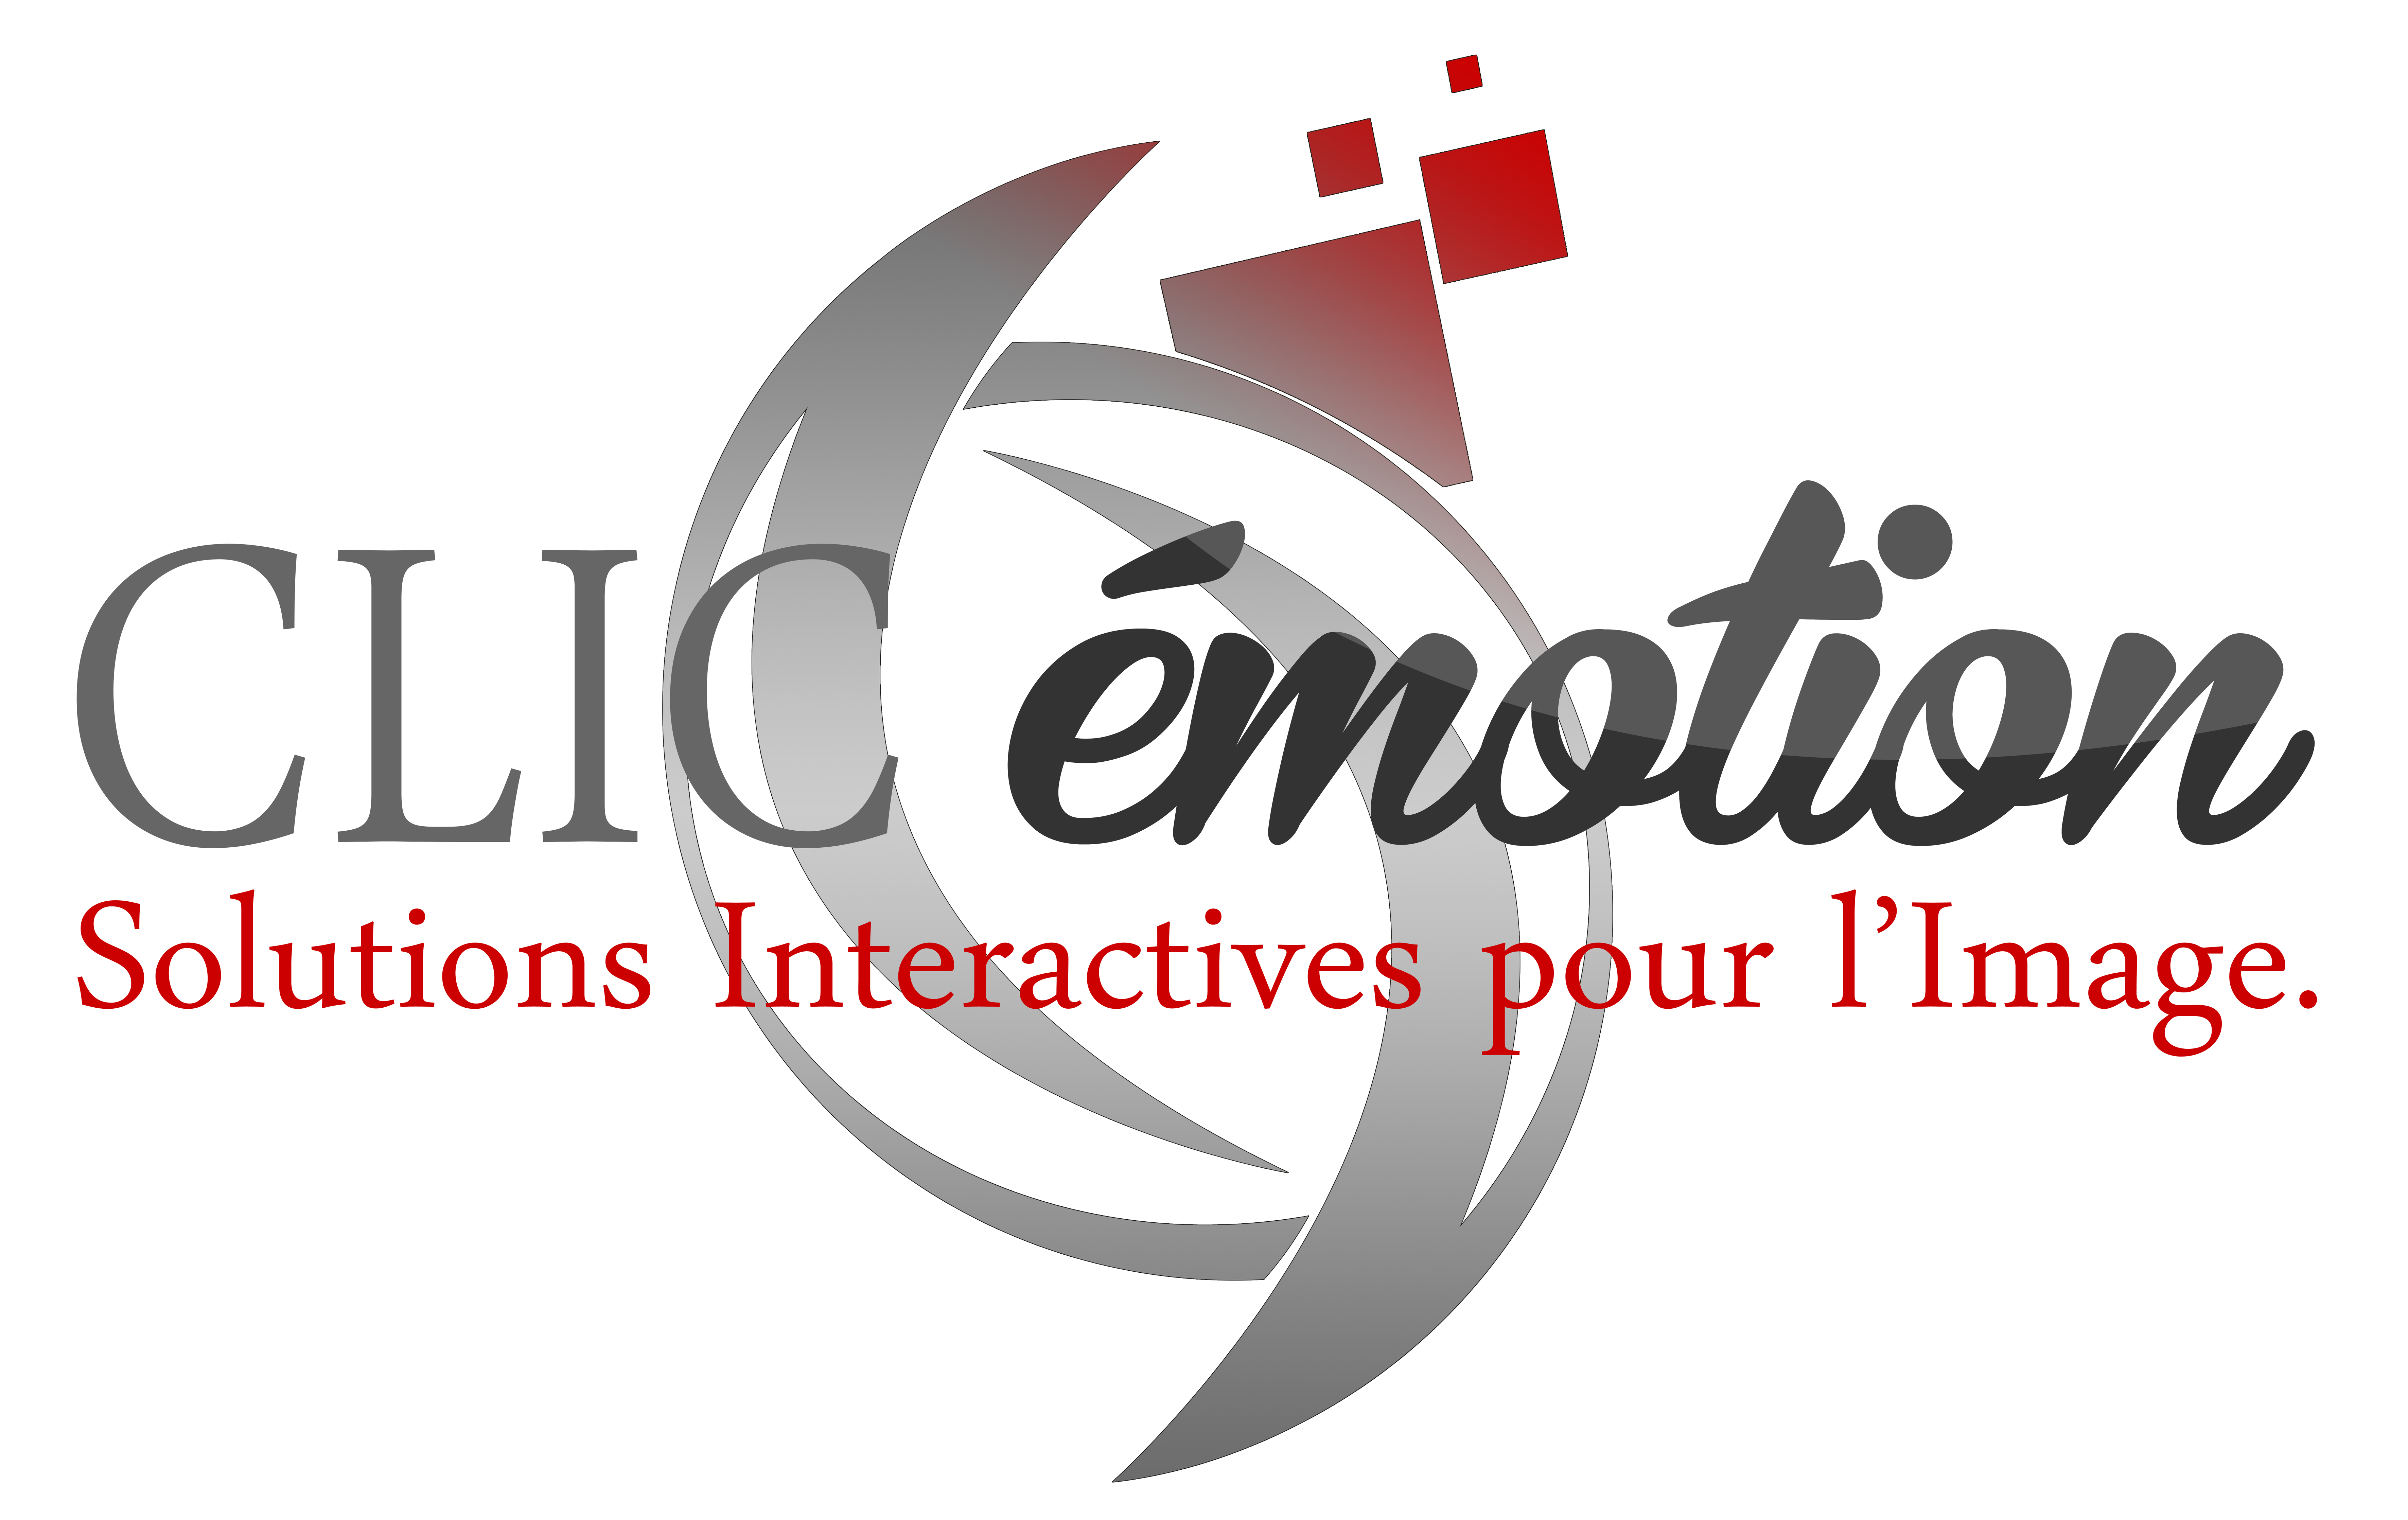 Clic-Emotion-logo hd